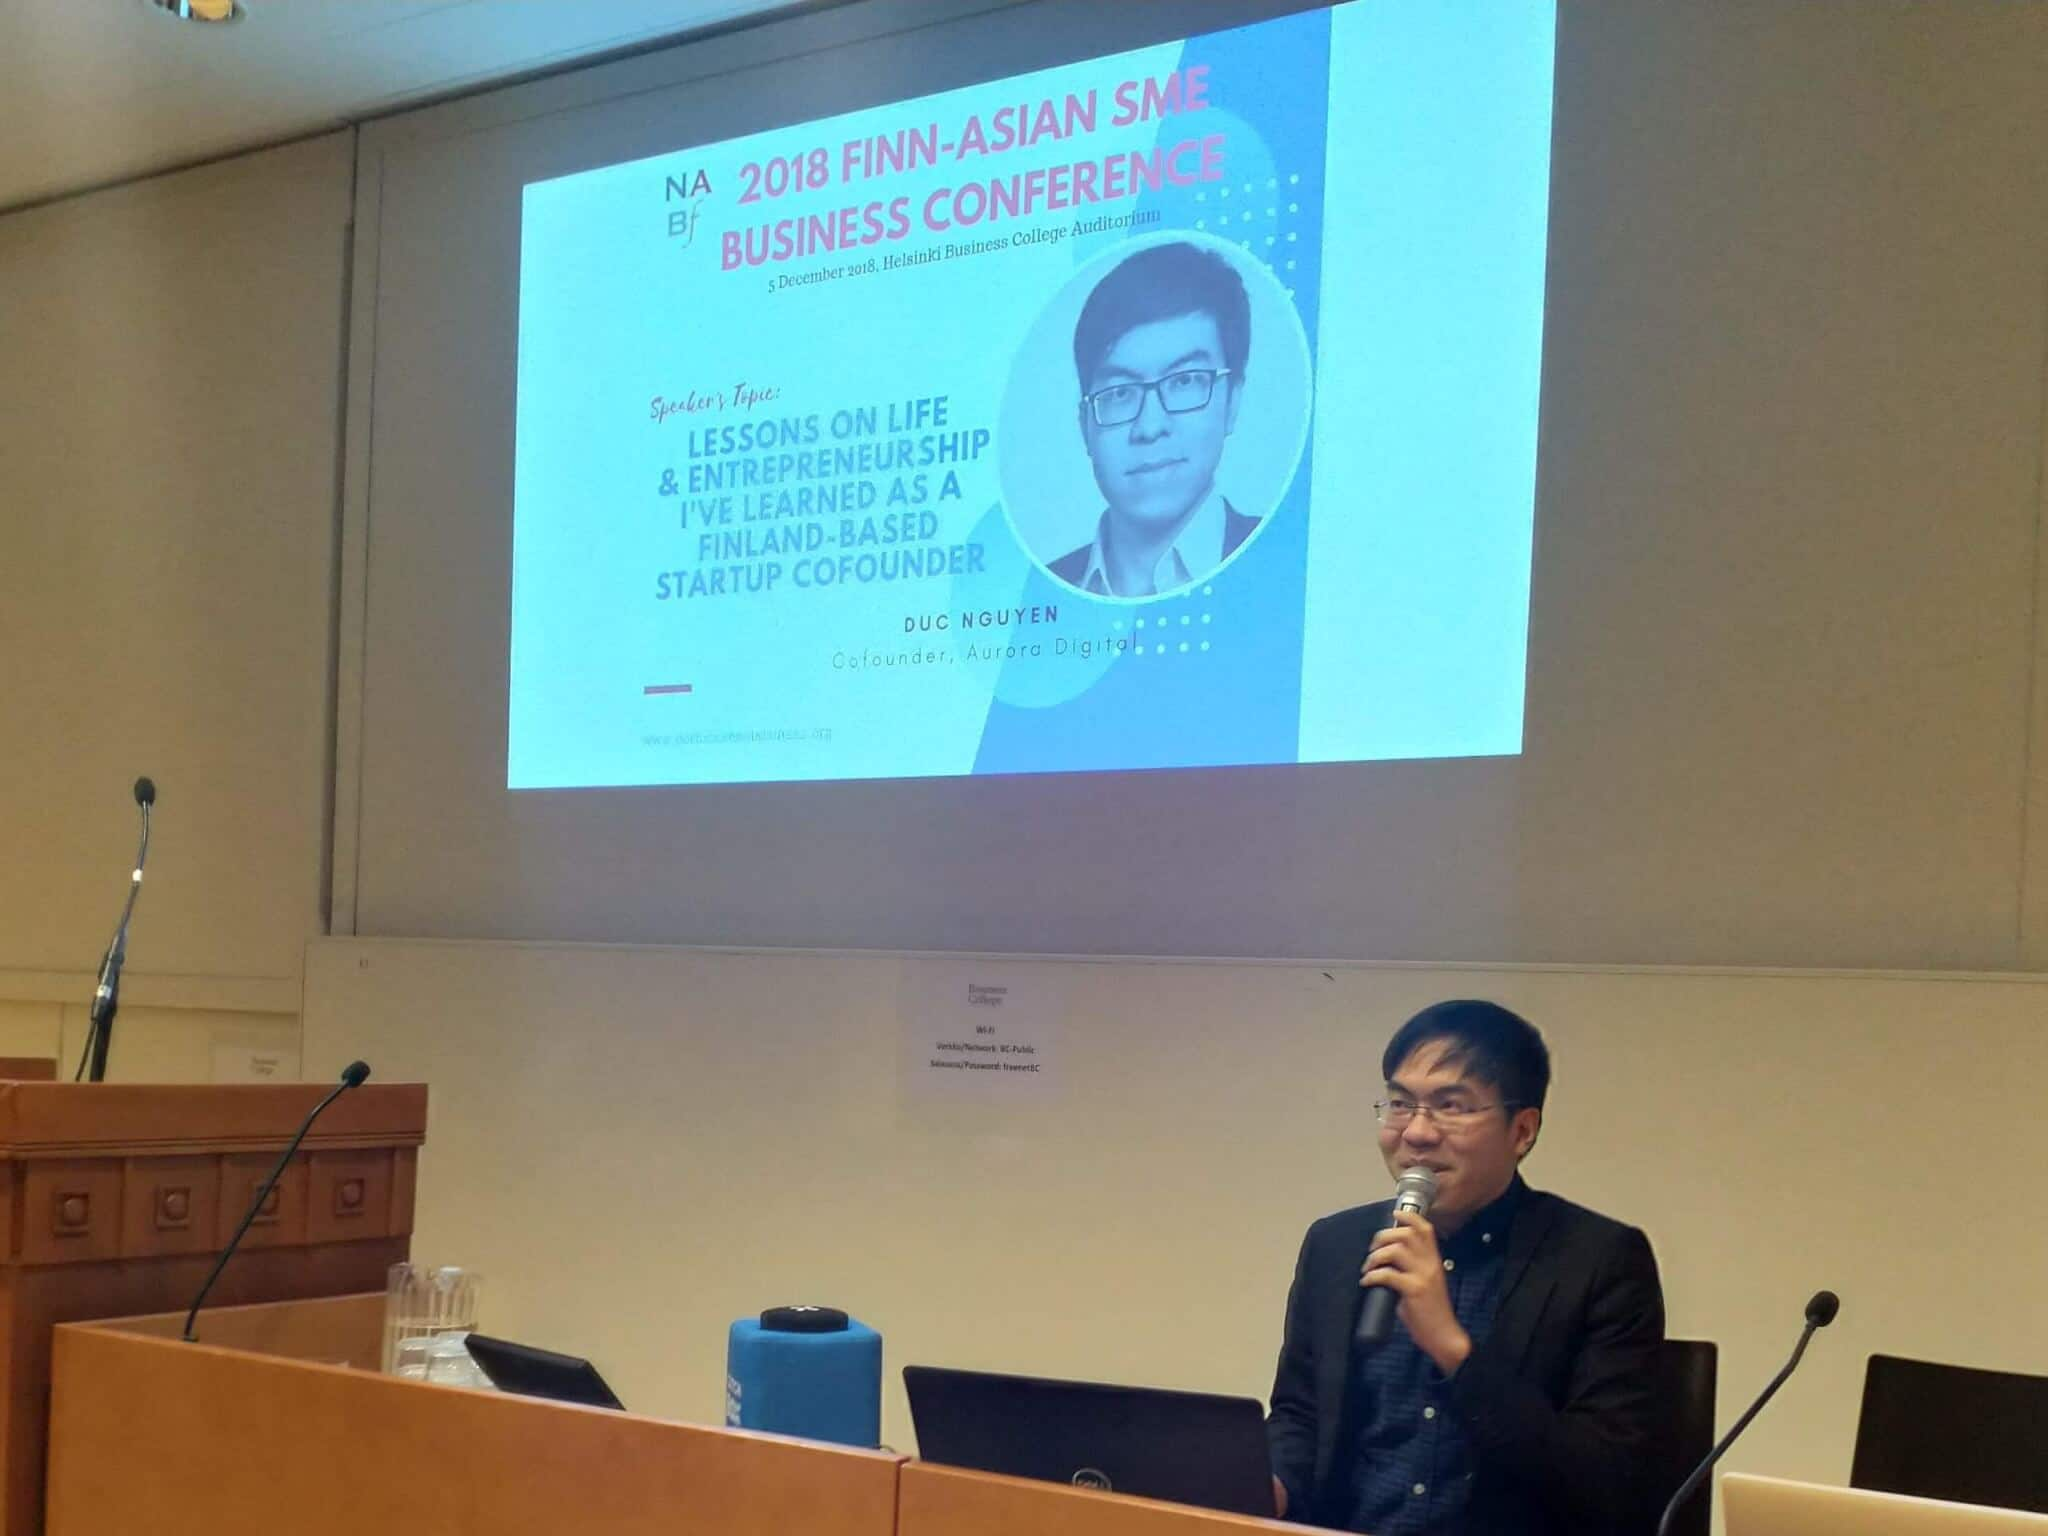 I am a guest speaker at the FINN-ASIAN SME BUSINESS